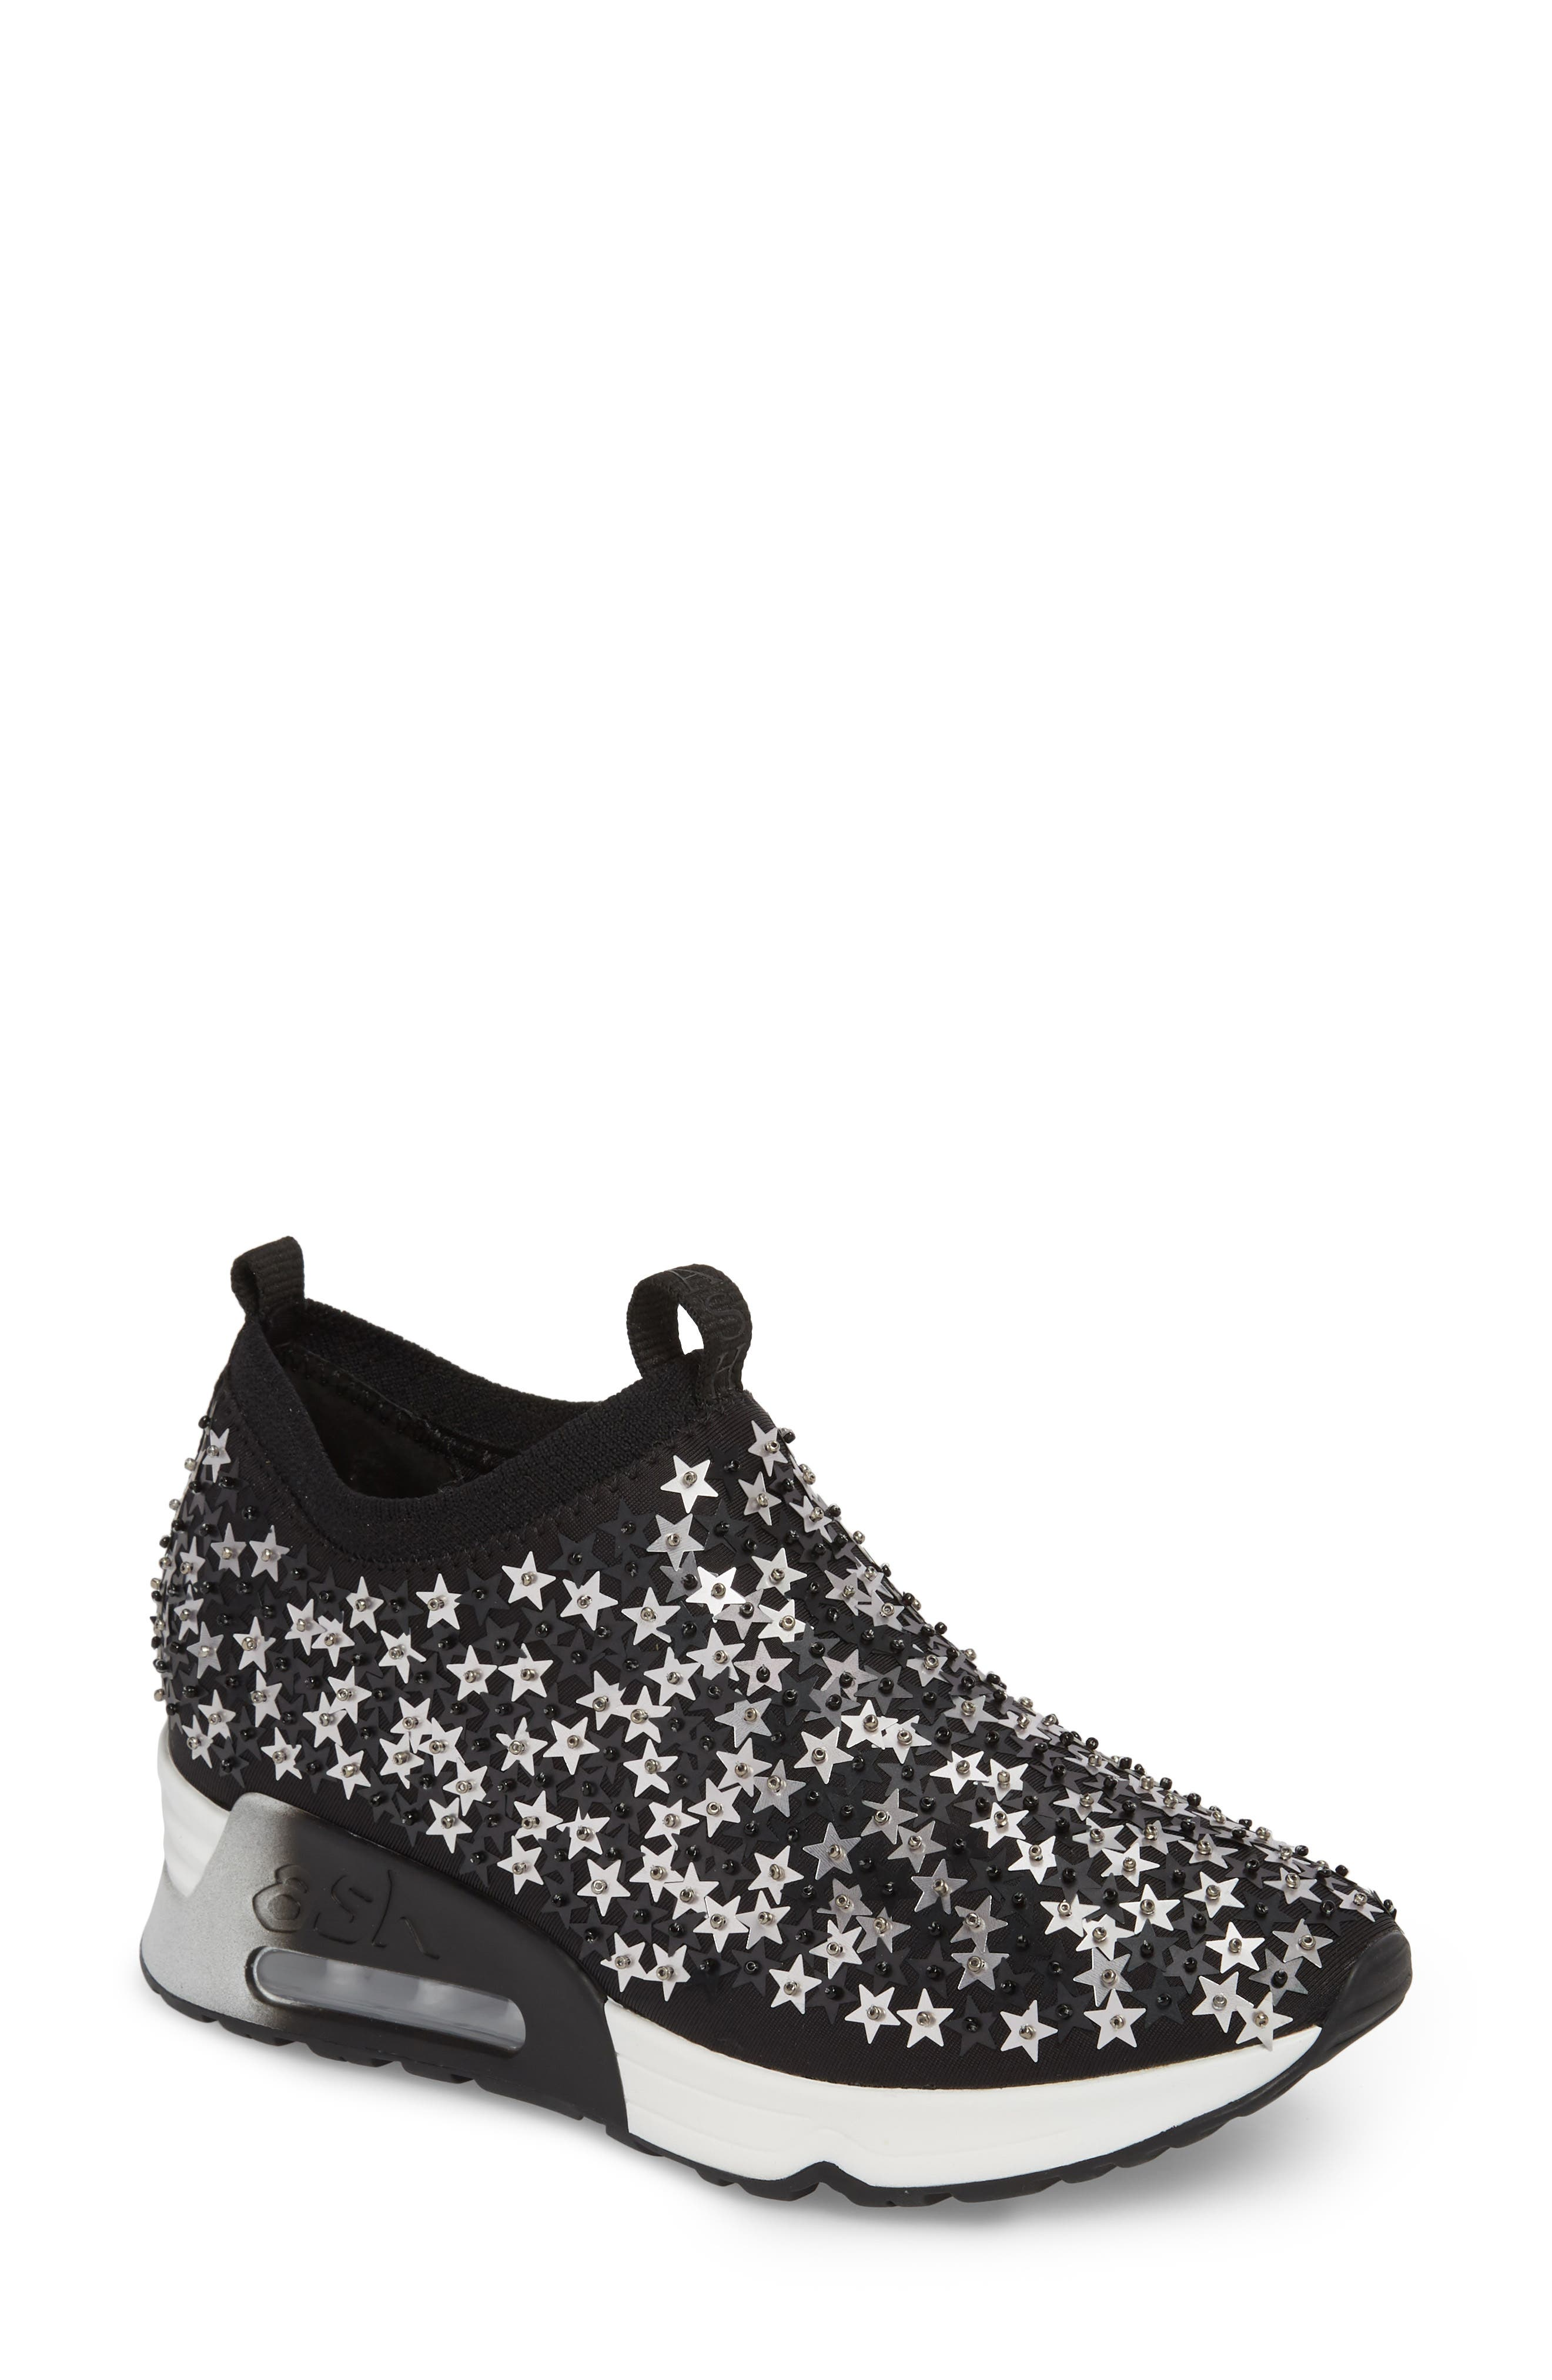 Lighting Star Platform Sock Sneaker,                             Main thumbnail 1, color,                             Black/ Silver